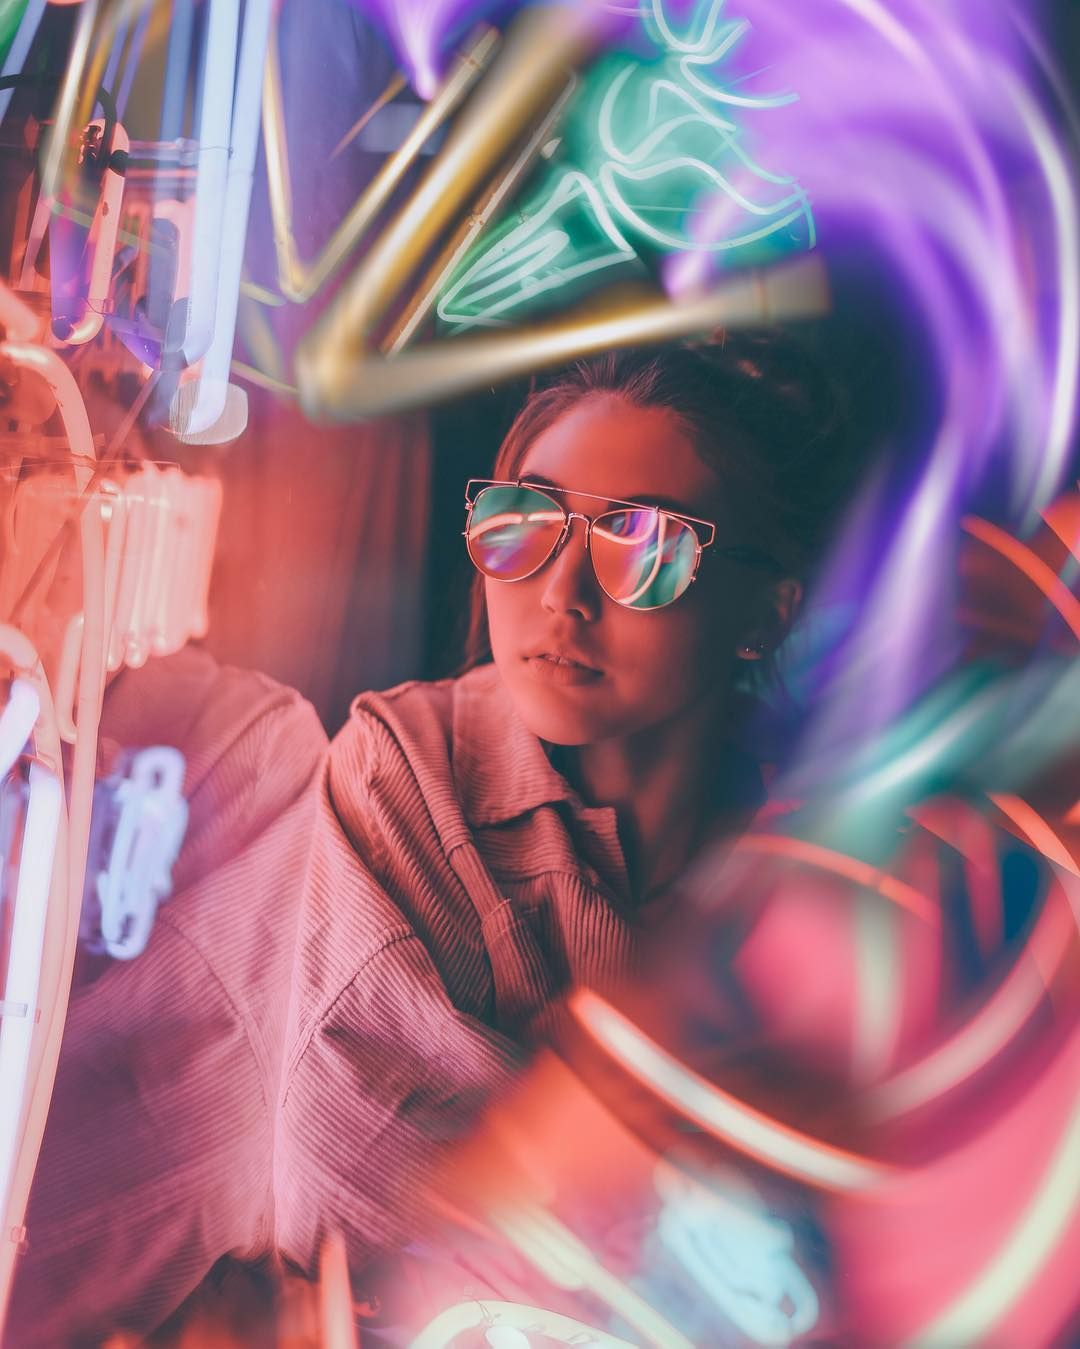 Vibrant and Moody Lifestyle Portrait Photography by The Dreamers Eye # photography | Neon photography, Portrait photography, Night portrait